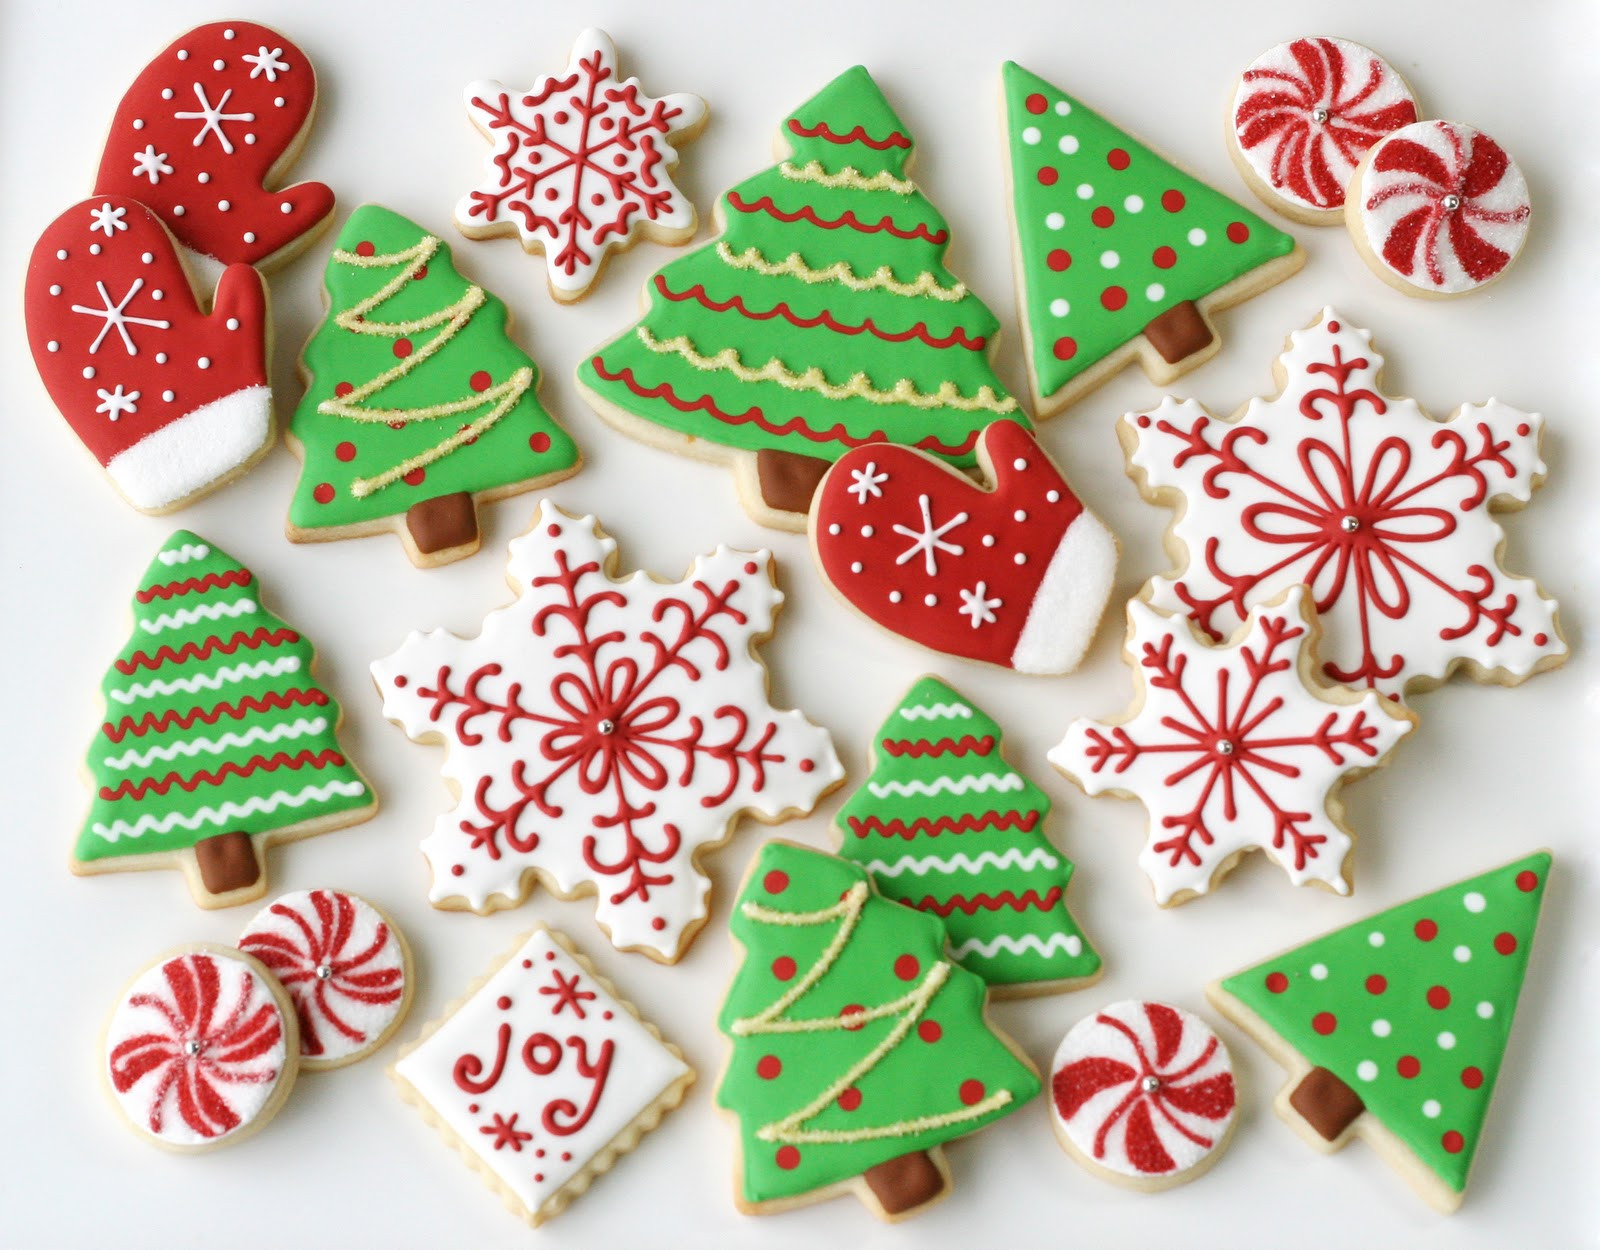 Christmas Cookie Icing Ideas  Christmas Cookies Galore Glorious Treats